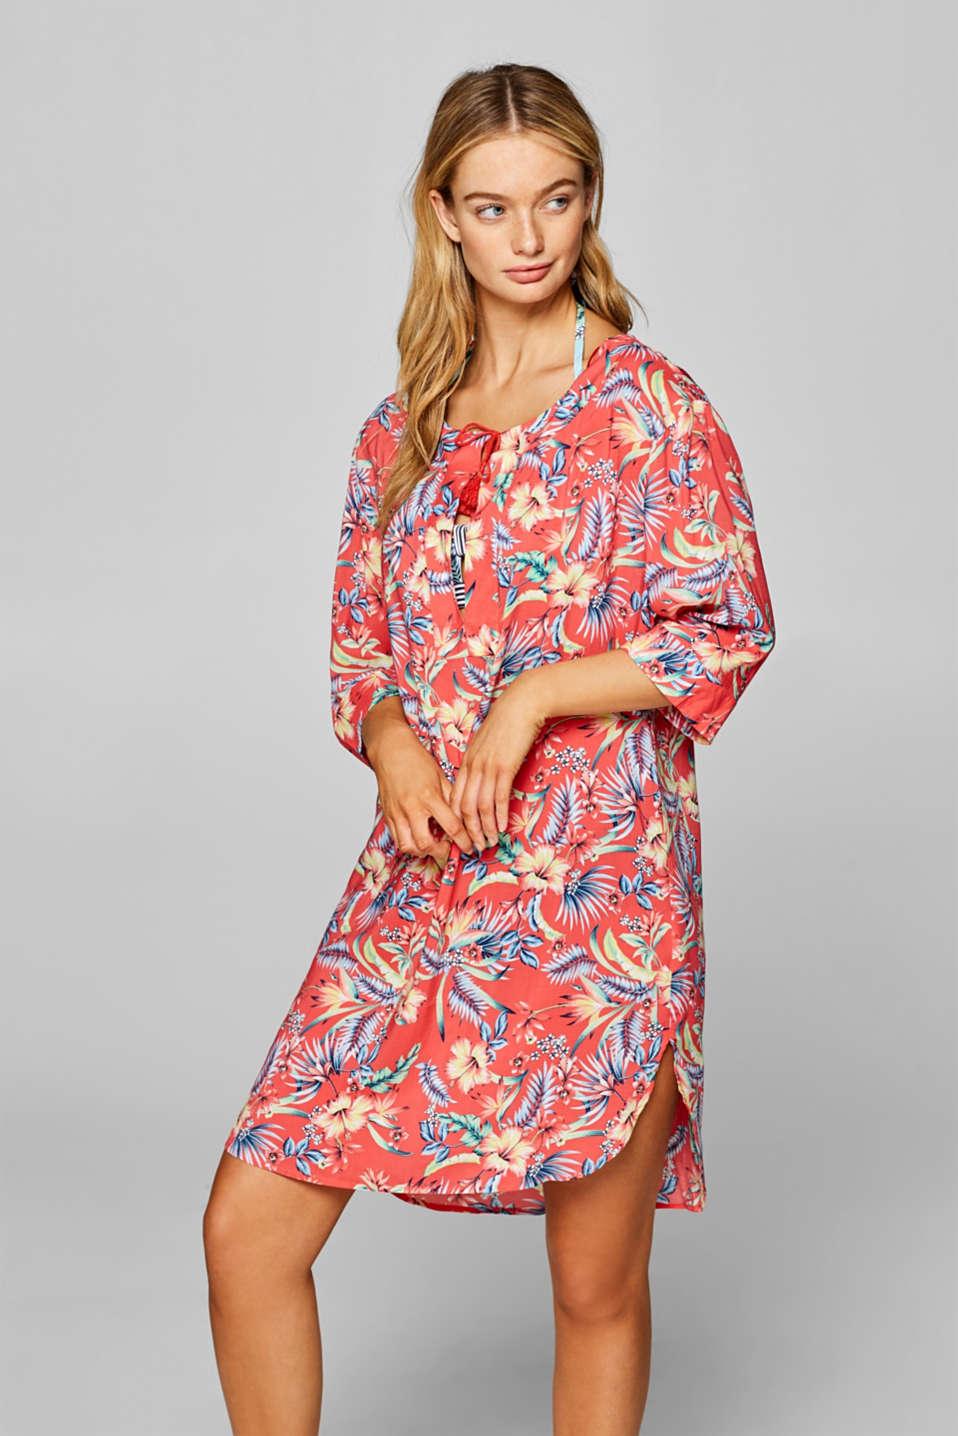 Esprit - Tunic dress with a colourful floral print